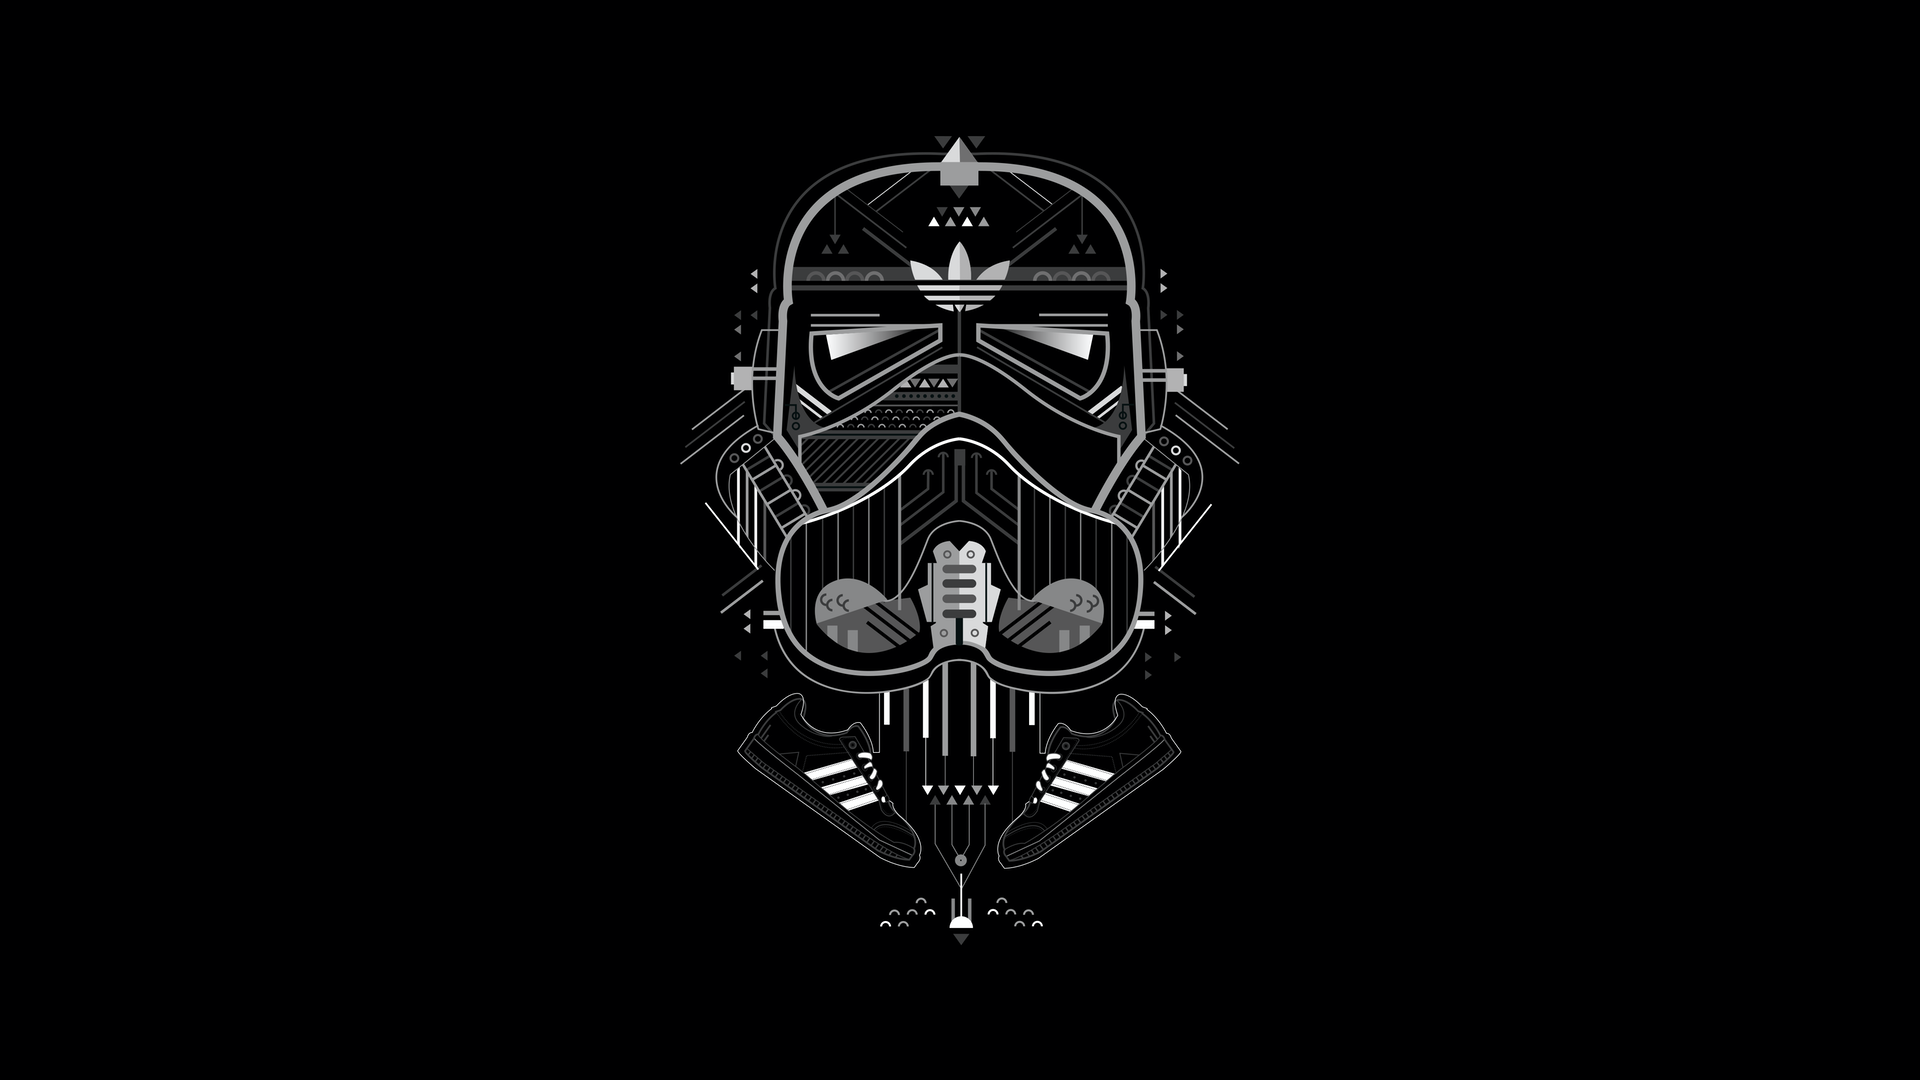 Adidas x Star Wars Illustration Project by Fishfinger Creative Agency